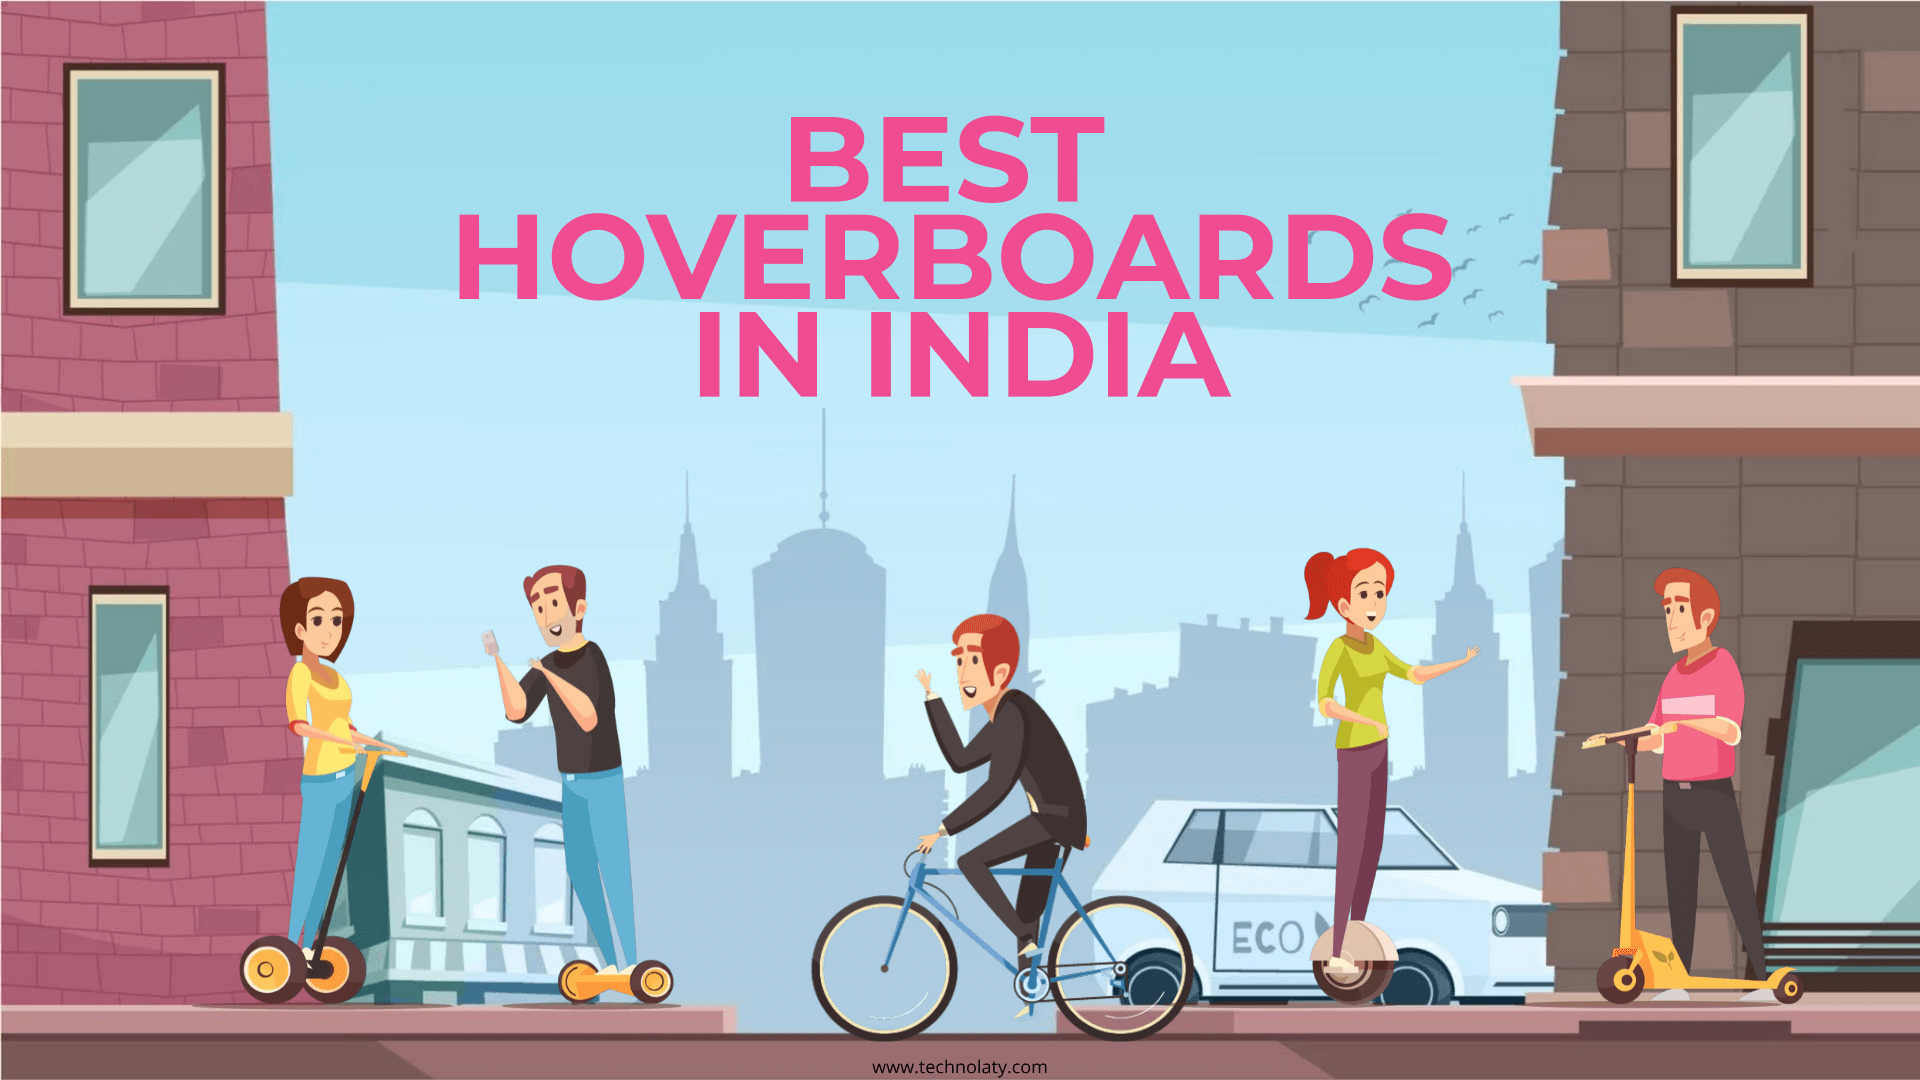 Best Hoverboards in India